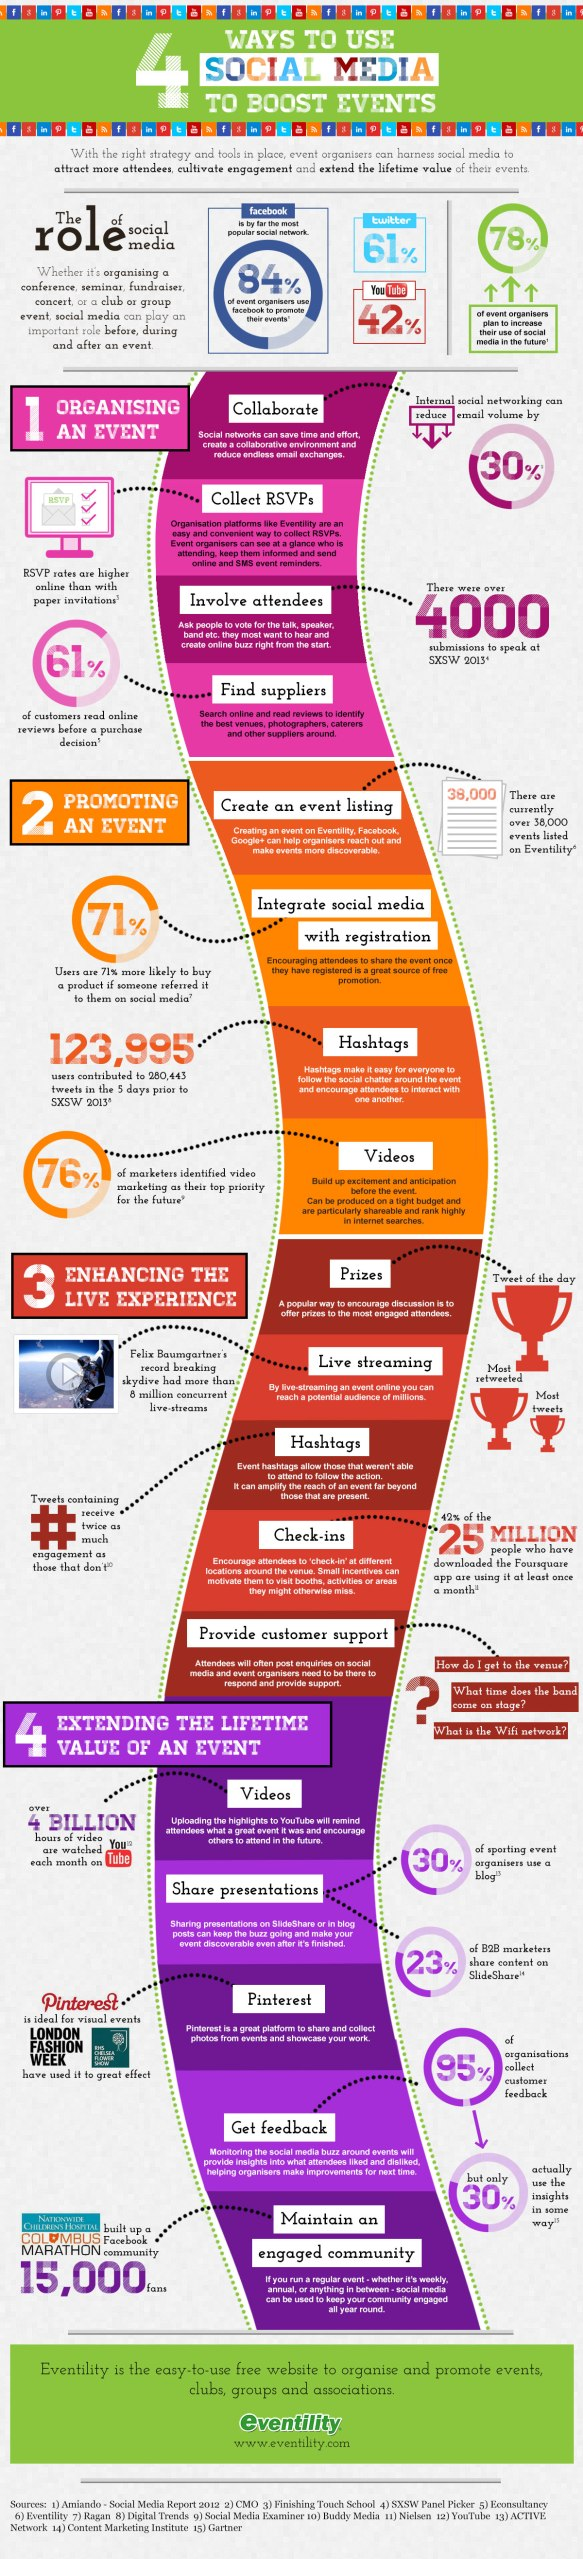 4 Ways to Use Social Media to Boost Events Infographic